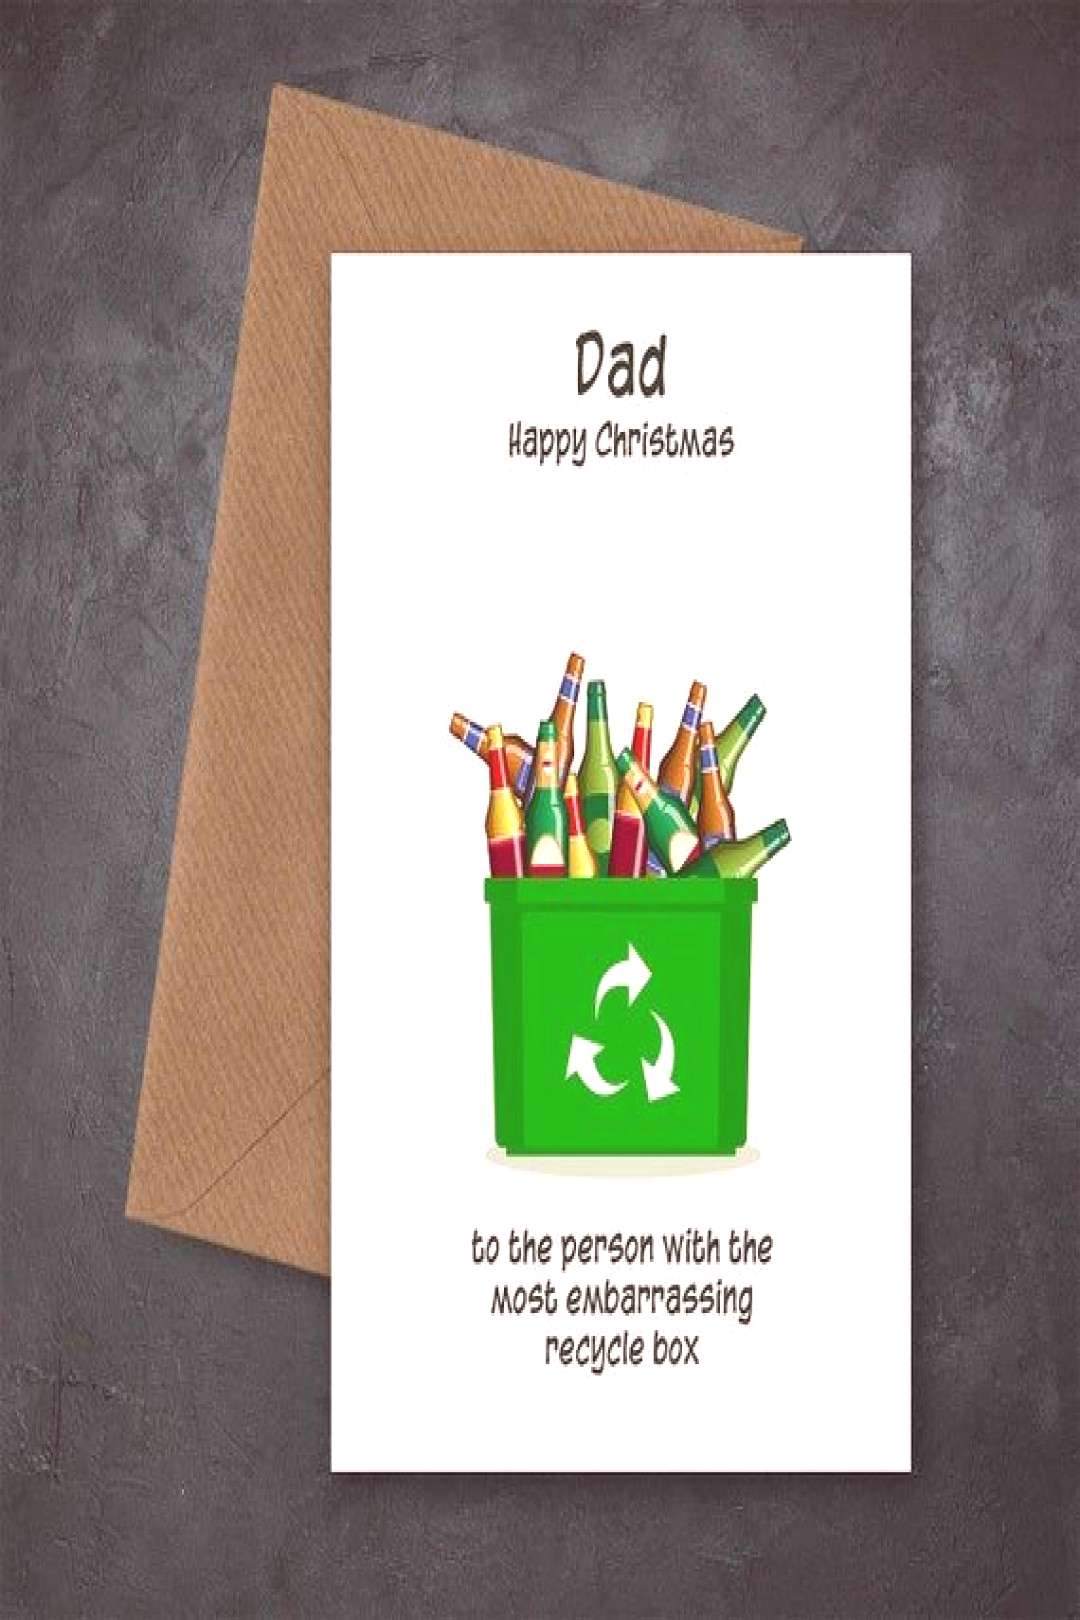 Funny Christmas Card for Dad - Dad Christmas Cards - Embarrassing Recycle Box - Fun card for any fa